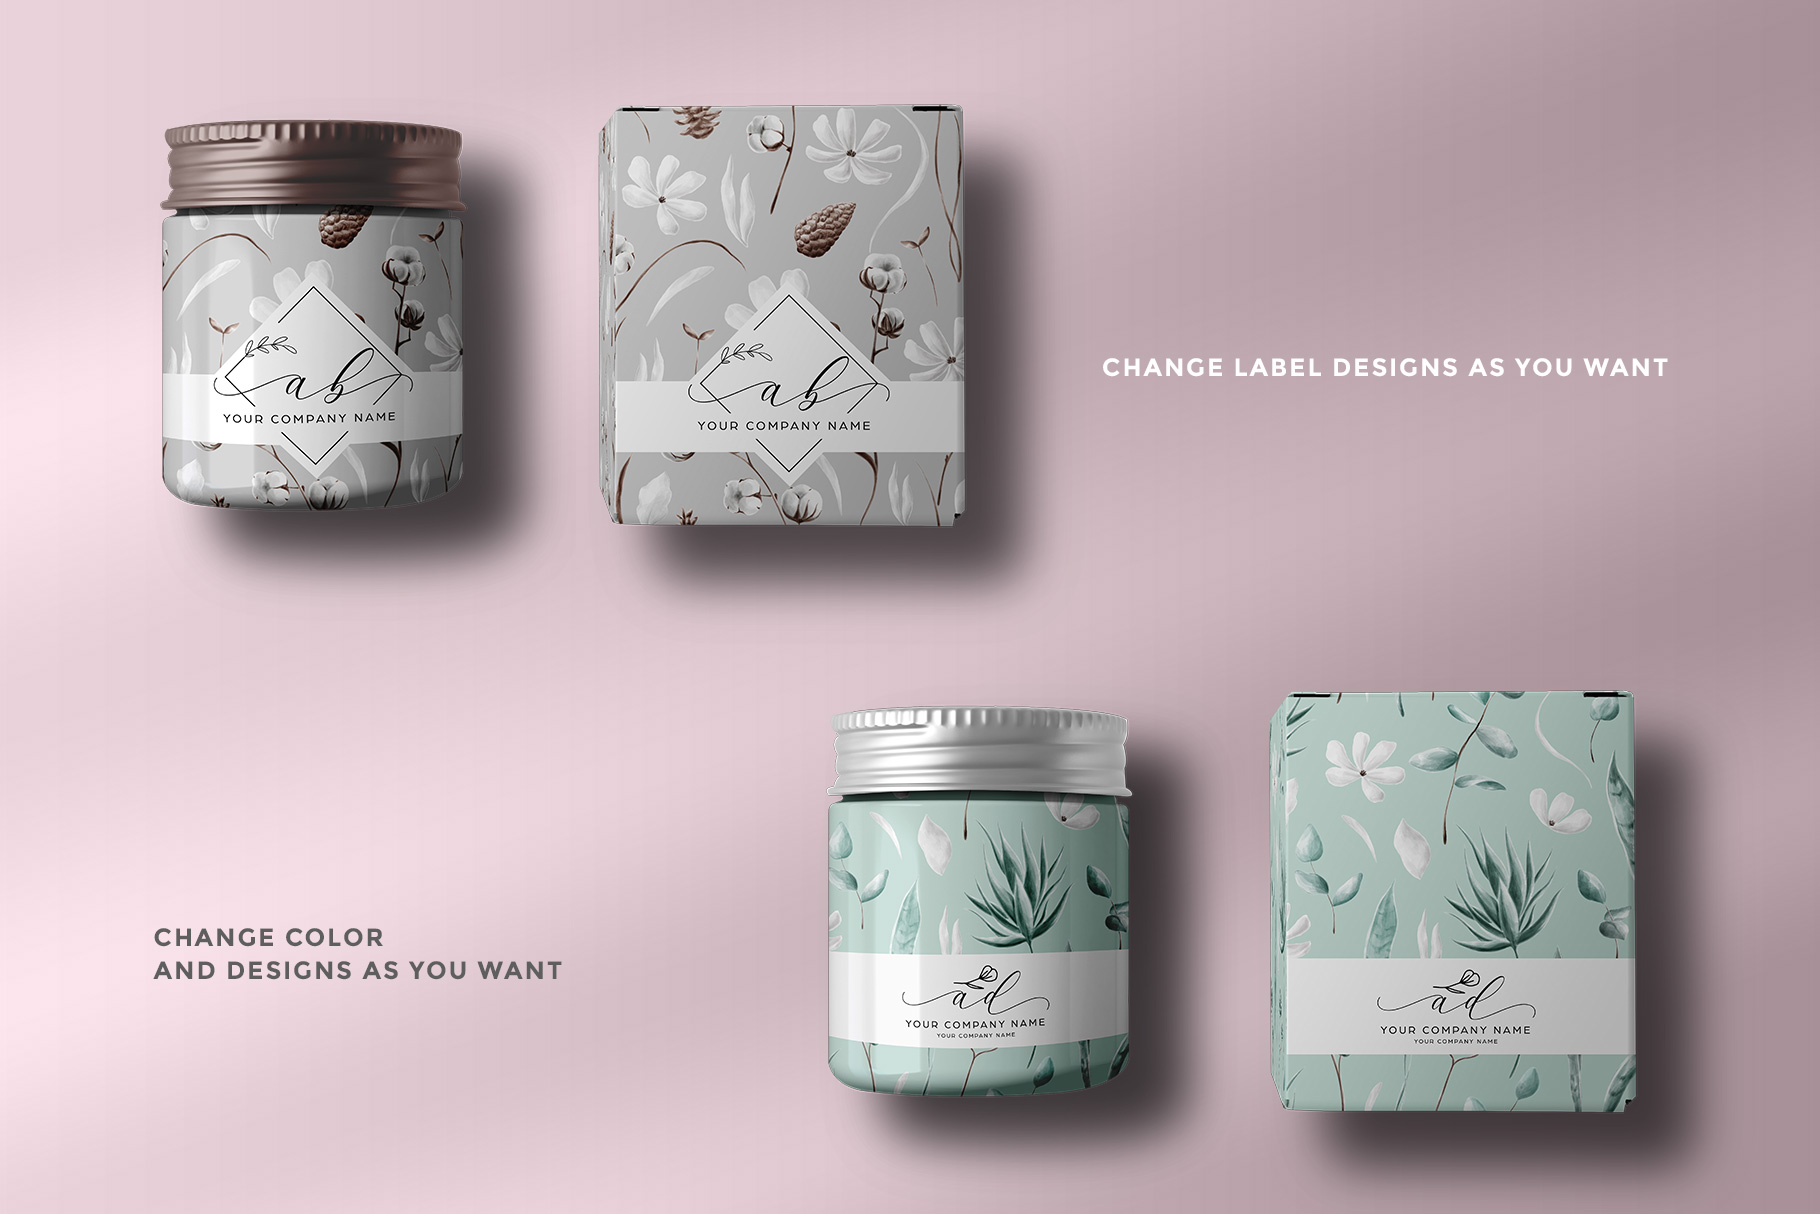 features of the top view cosmetic bottle and box packaging mockup